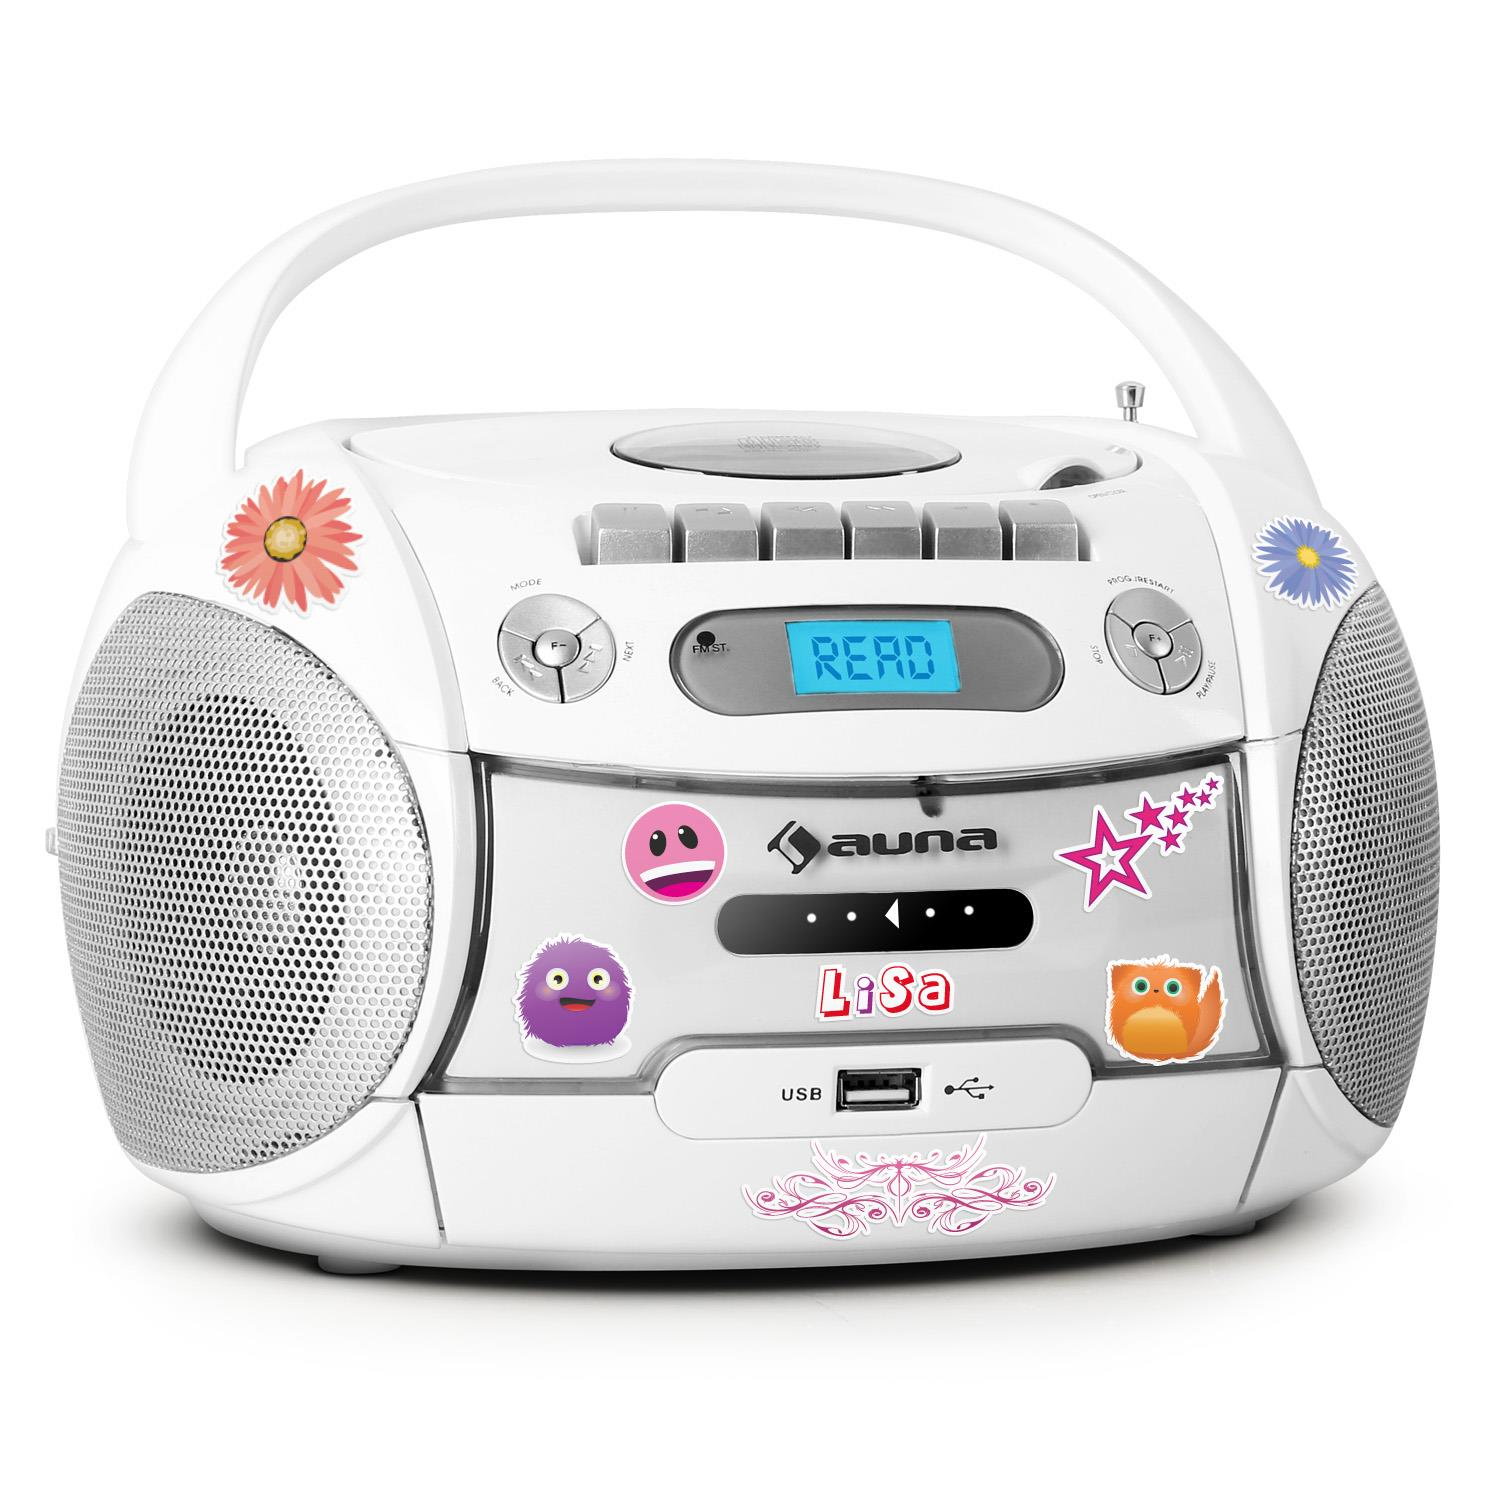 KASSETTEN MP3 CD PLAYER USB KINDER RADIO BOOMBOX